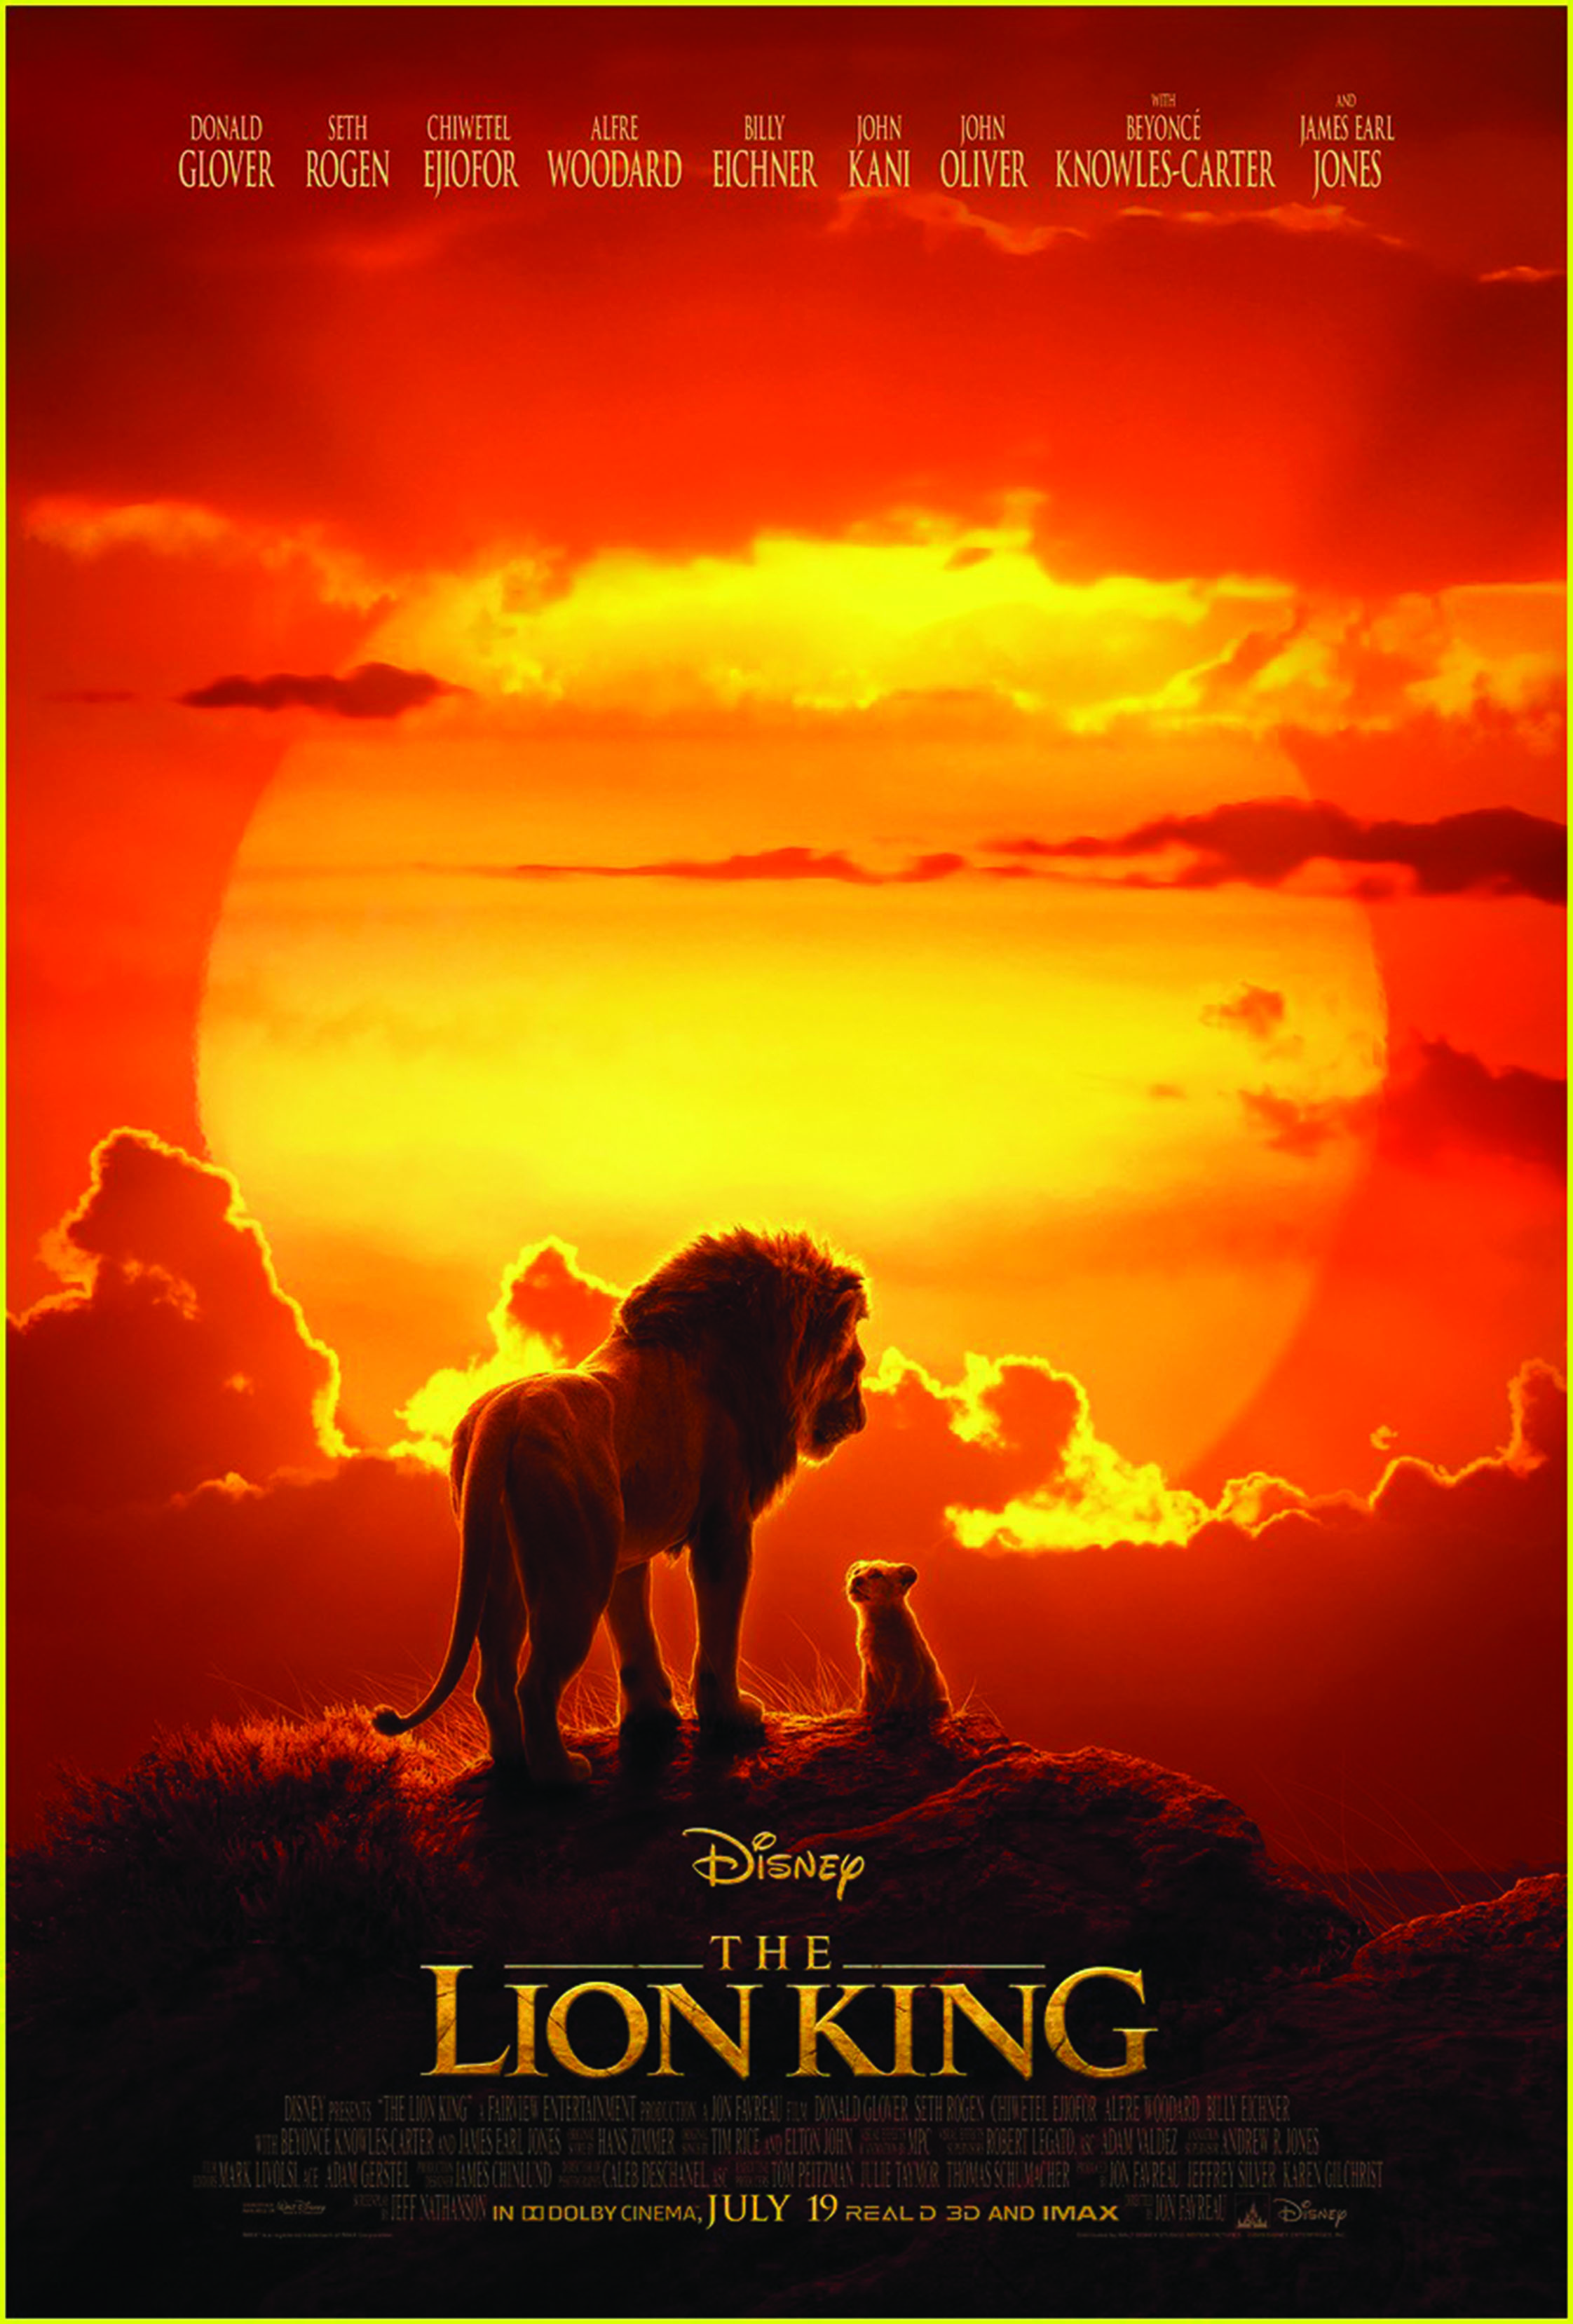 The Lion King movie poster.jpg